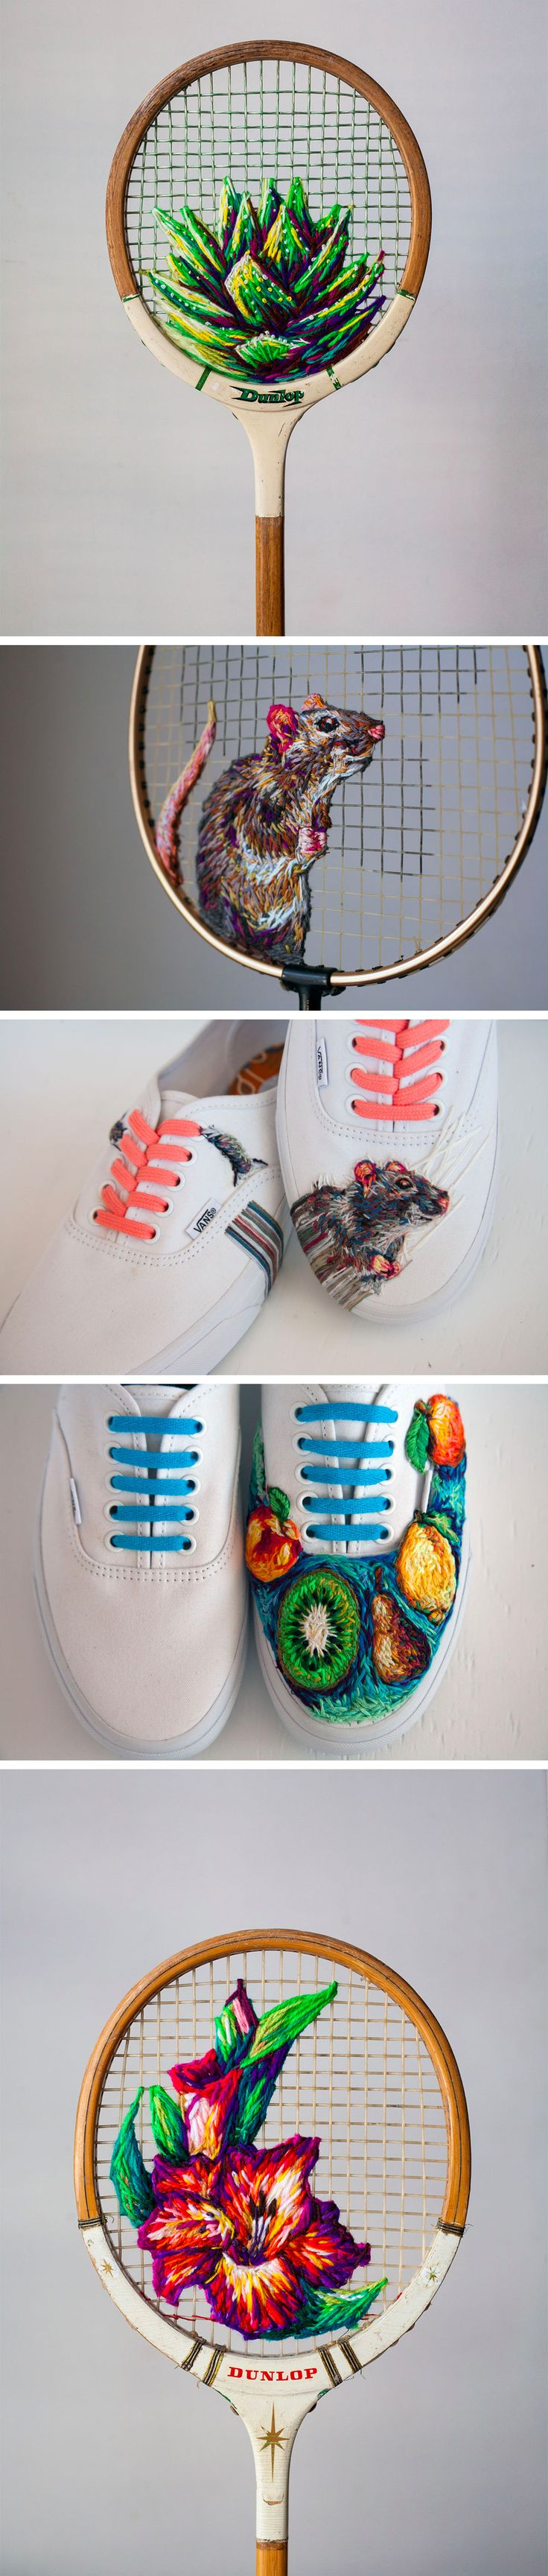 New Embroidered Works on Rackets, Shoes, and Fences by Danielle Clough                                                                                                                                                                                 More